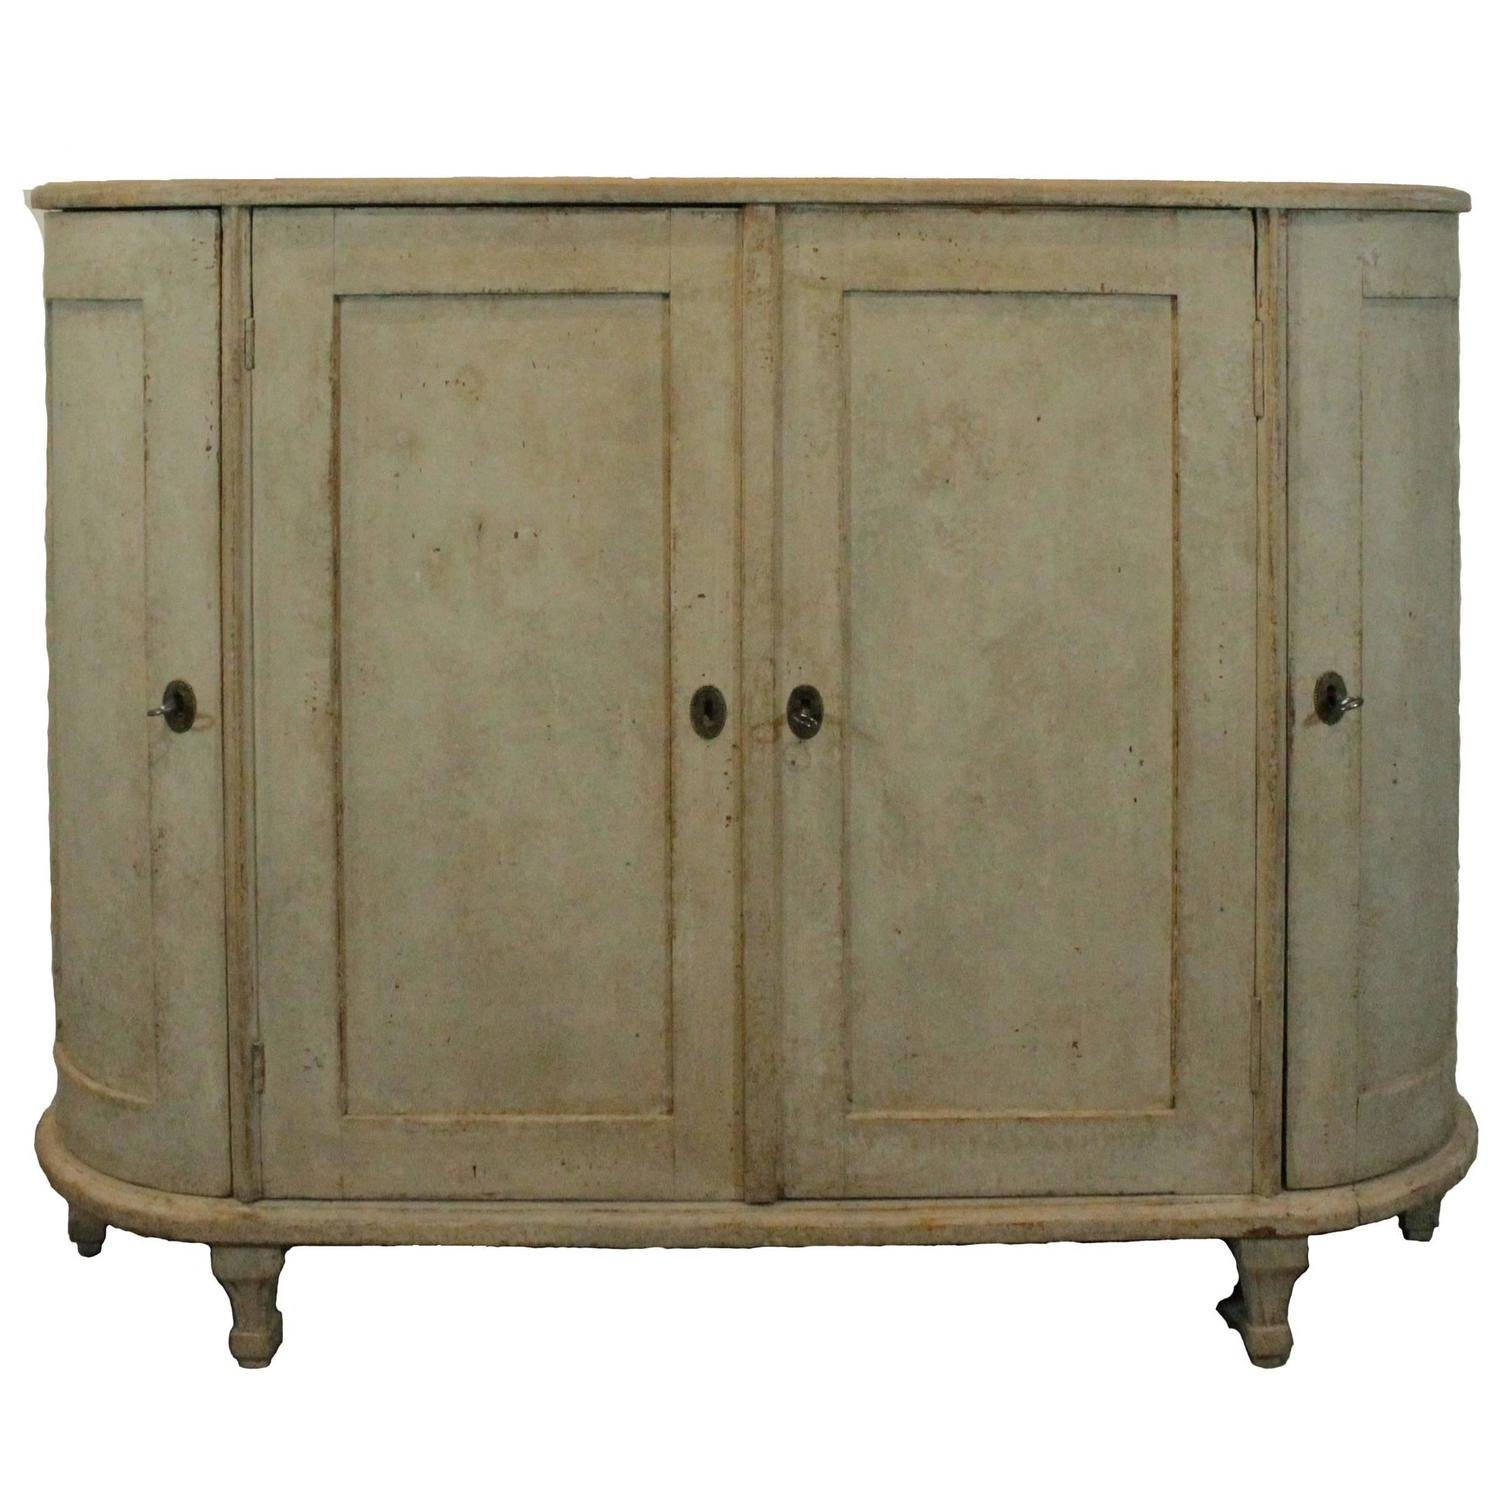 Antique Swedish Sideboard With Curved Sides, Early 19Th Century At with regard to Curved Sideboards (Image 1 of 30)